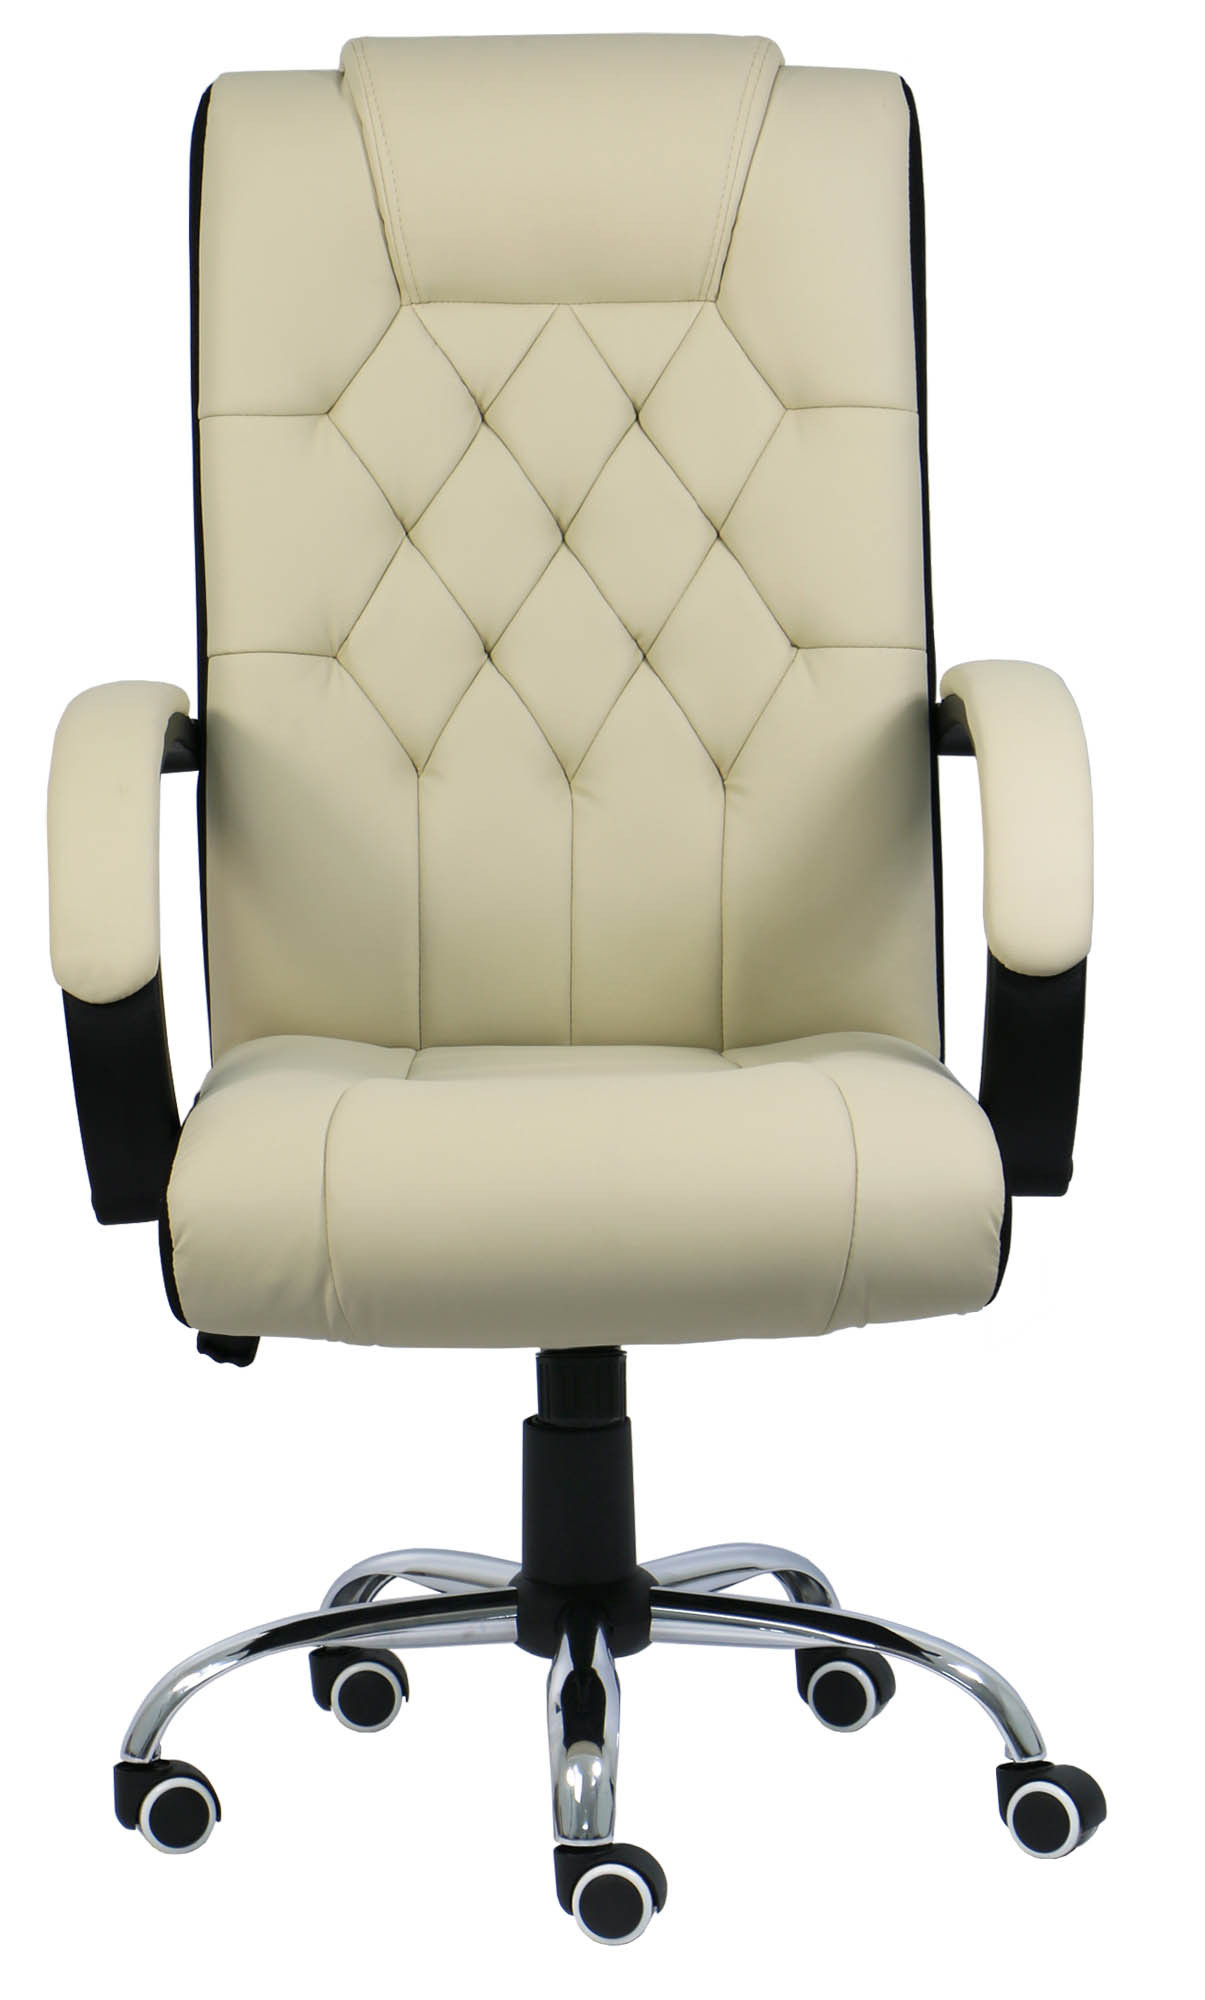 Rockford Executive Office Chair Beige Furniture Home D Cor Fortytwo